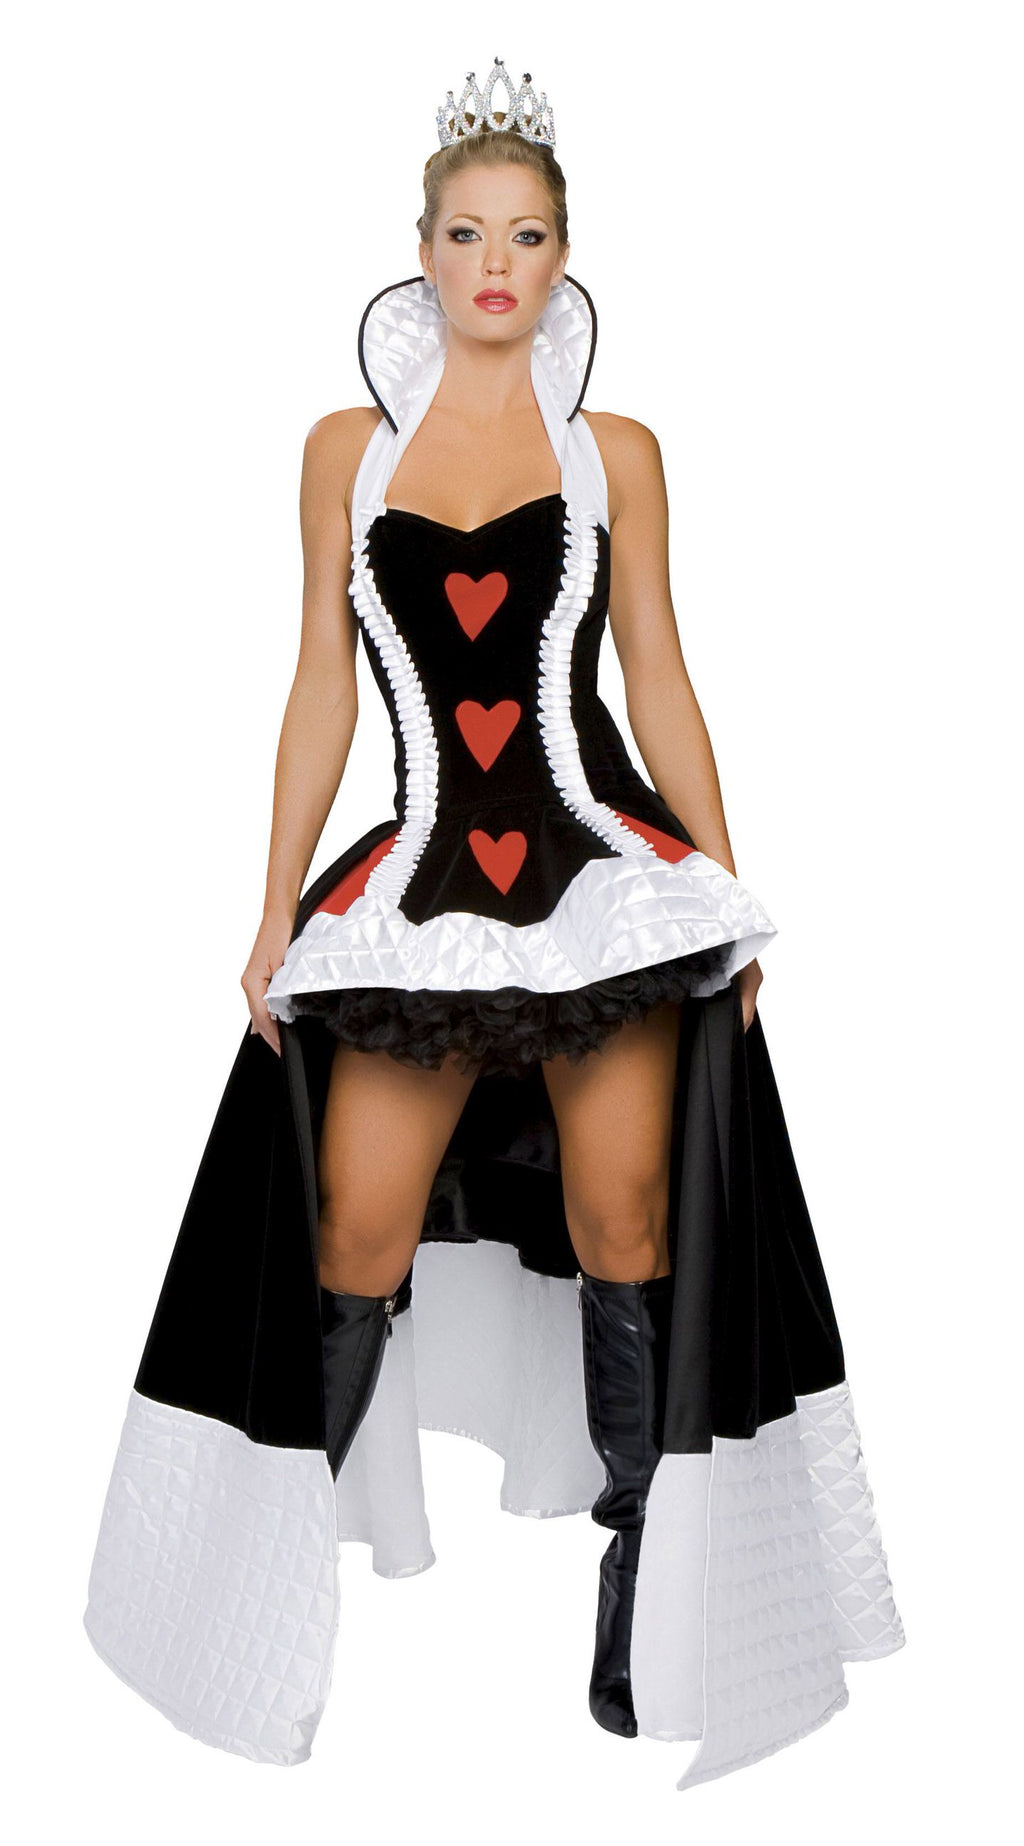 3-Piece-Alice-in-Wonderland-Queen-of-Hearts-Peplum-Gown-Dress-Costume